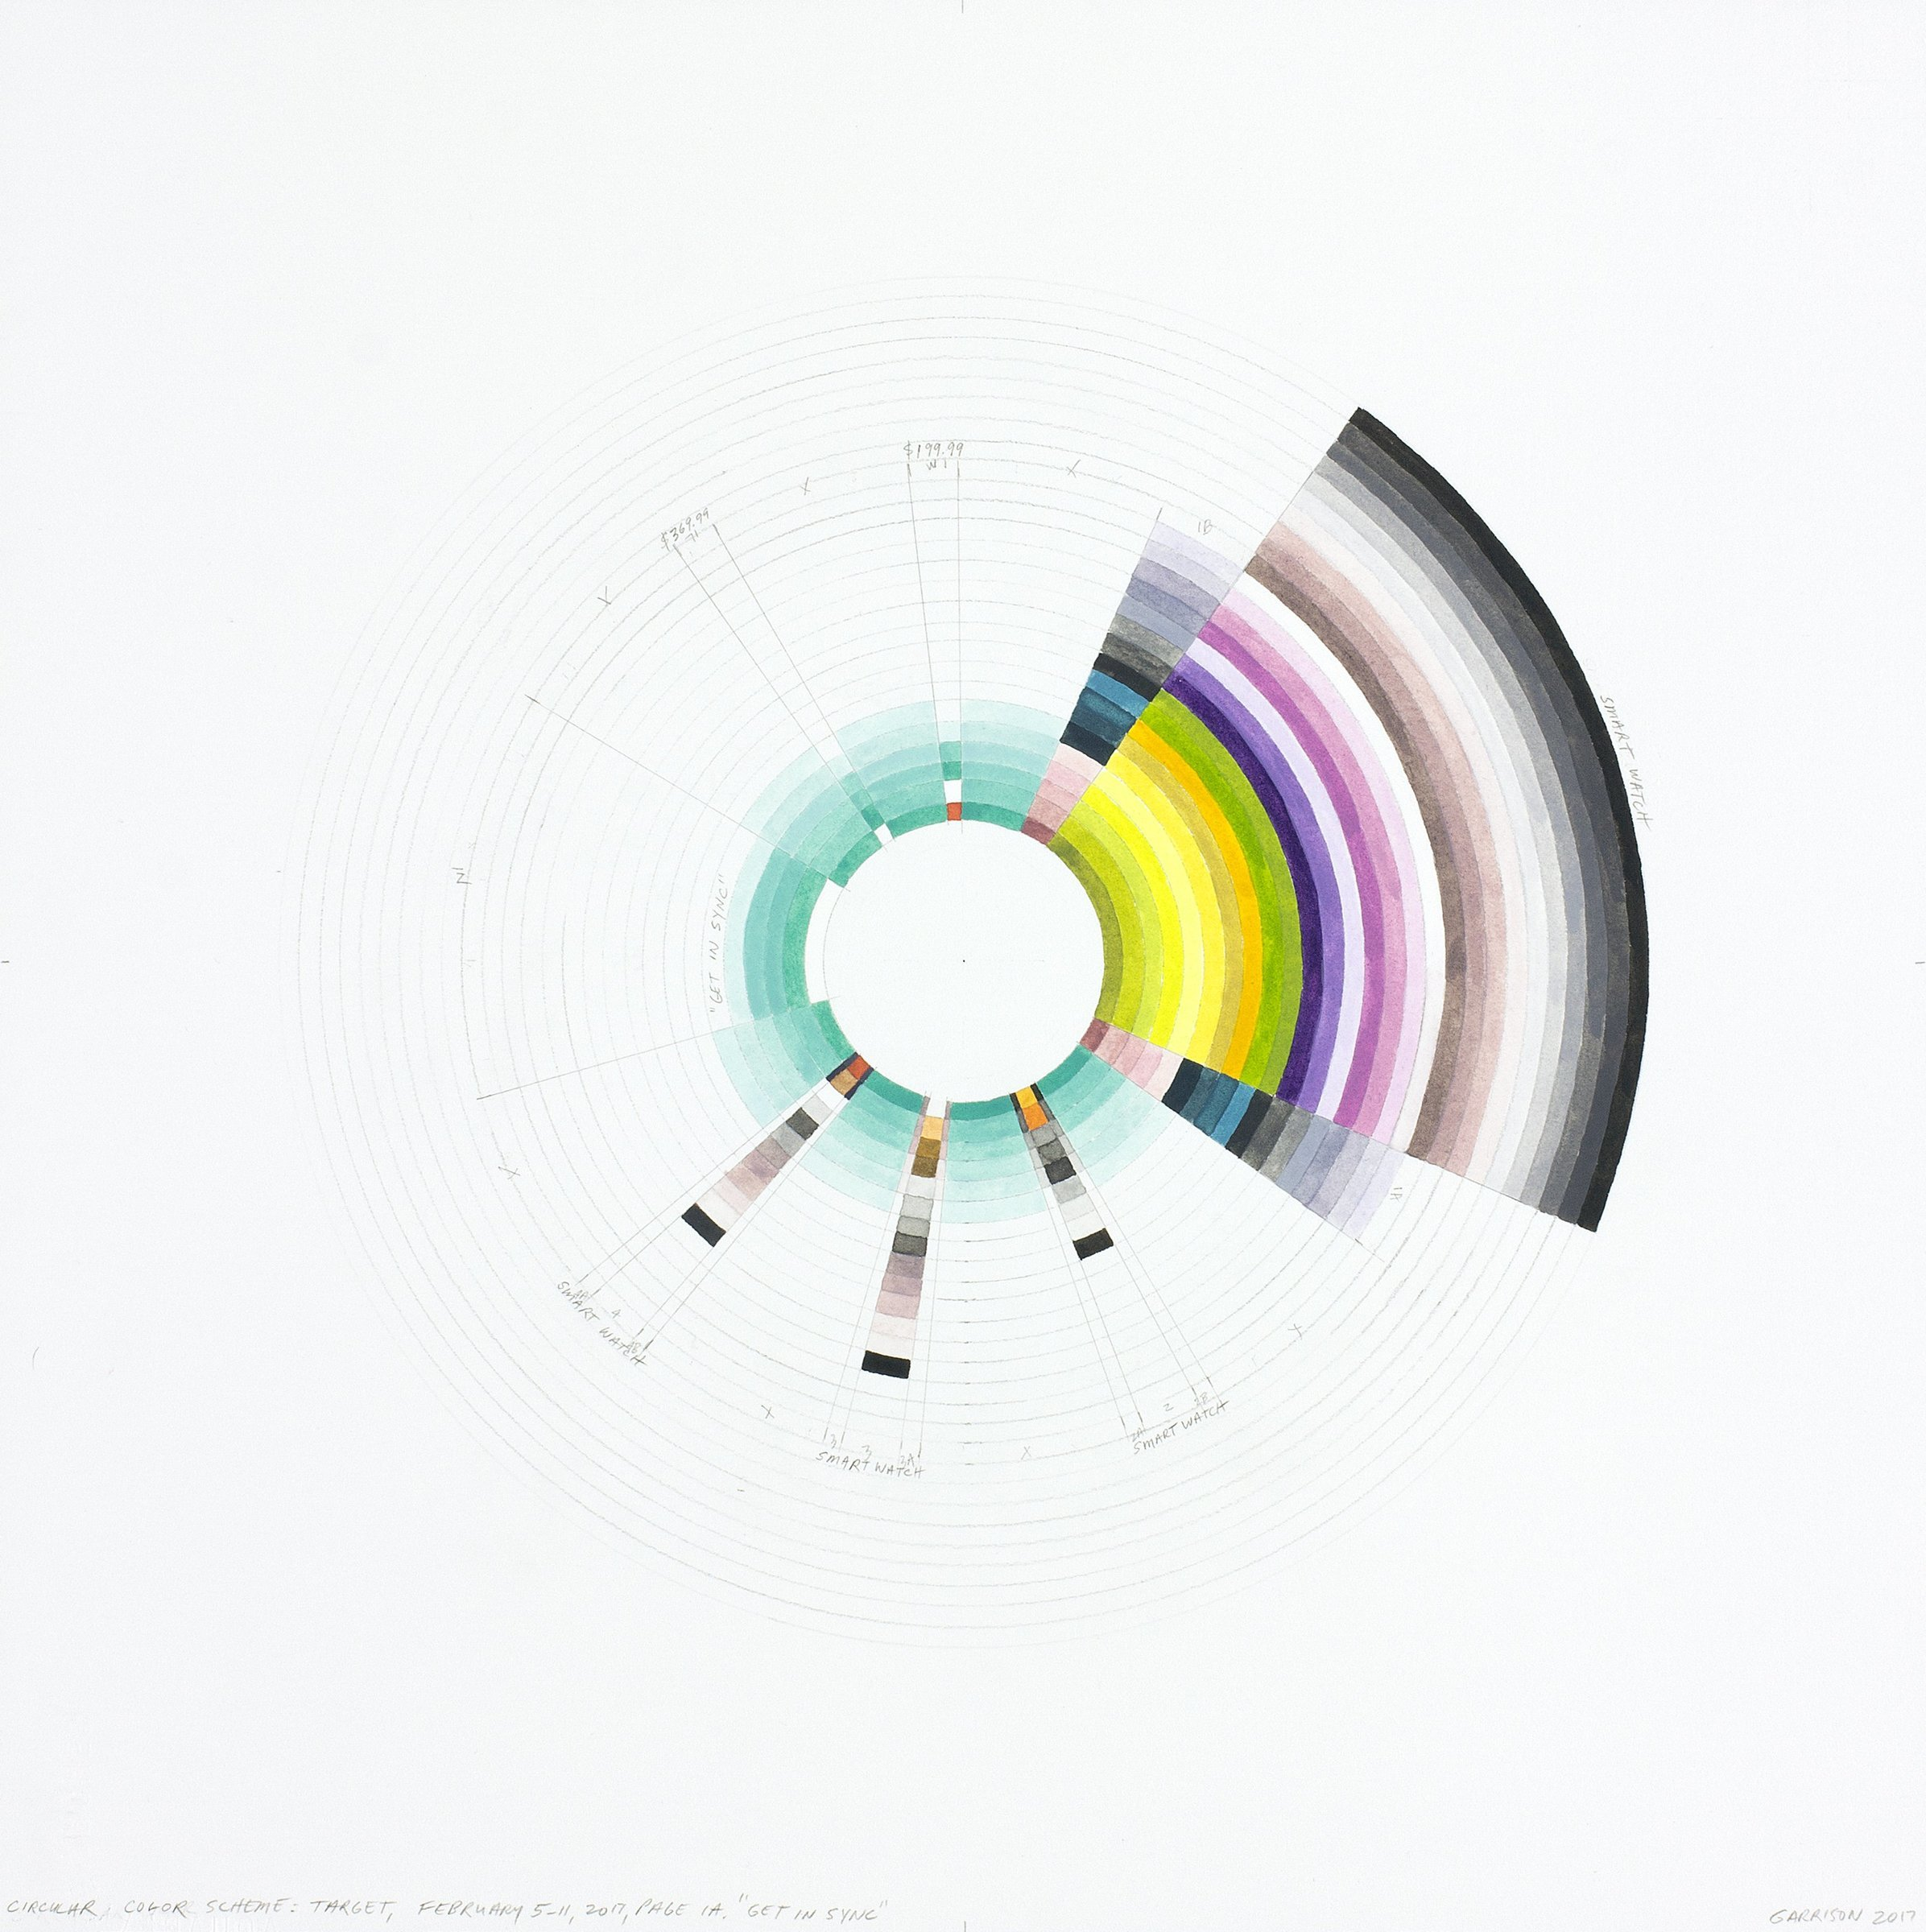 "Richard Garrison, Circular Color Scheme: Target, February 5-11, 2017, Page 1A. ""Get In Sync"", 2017"